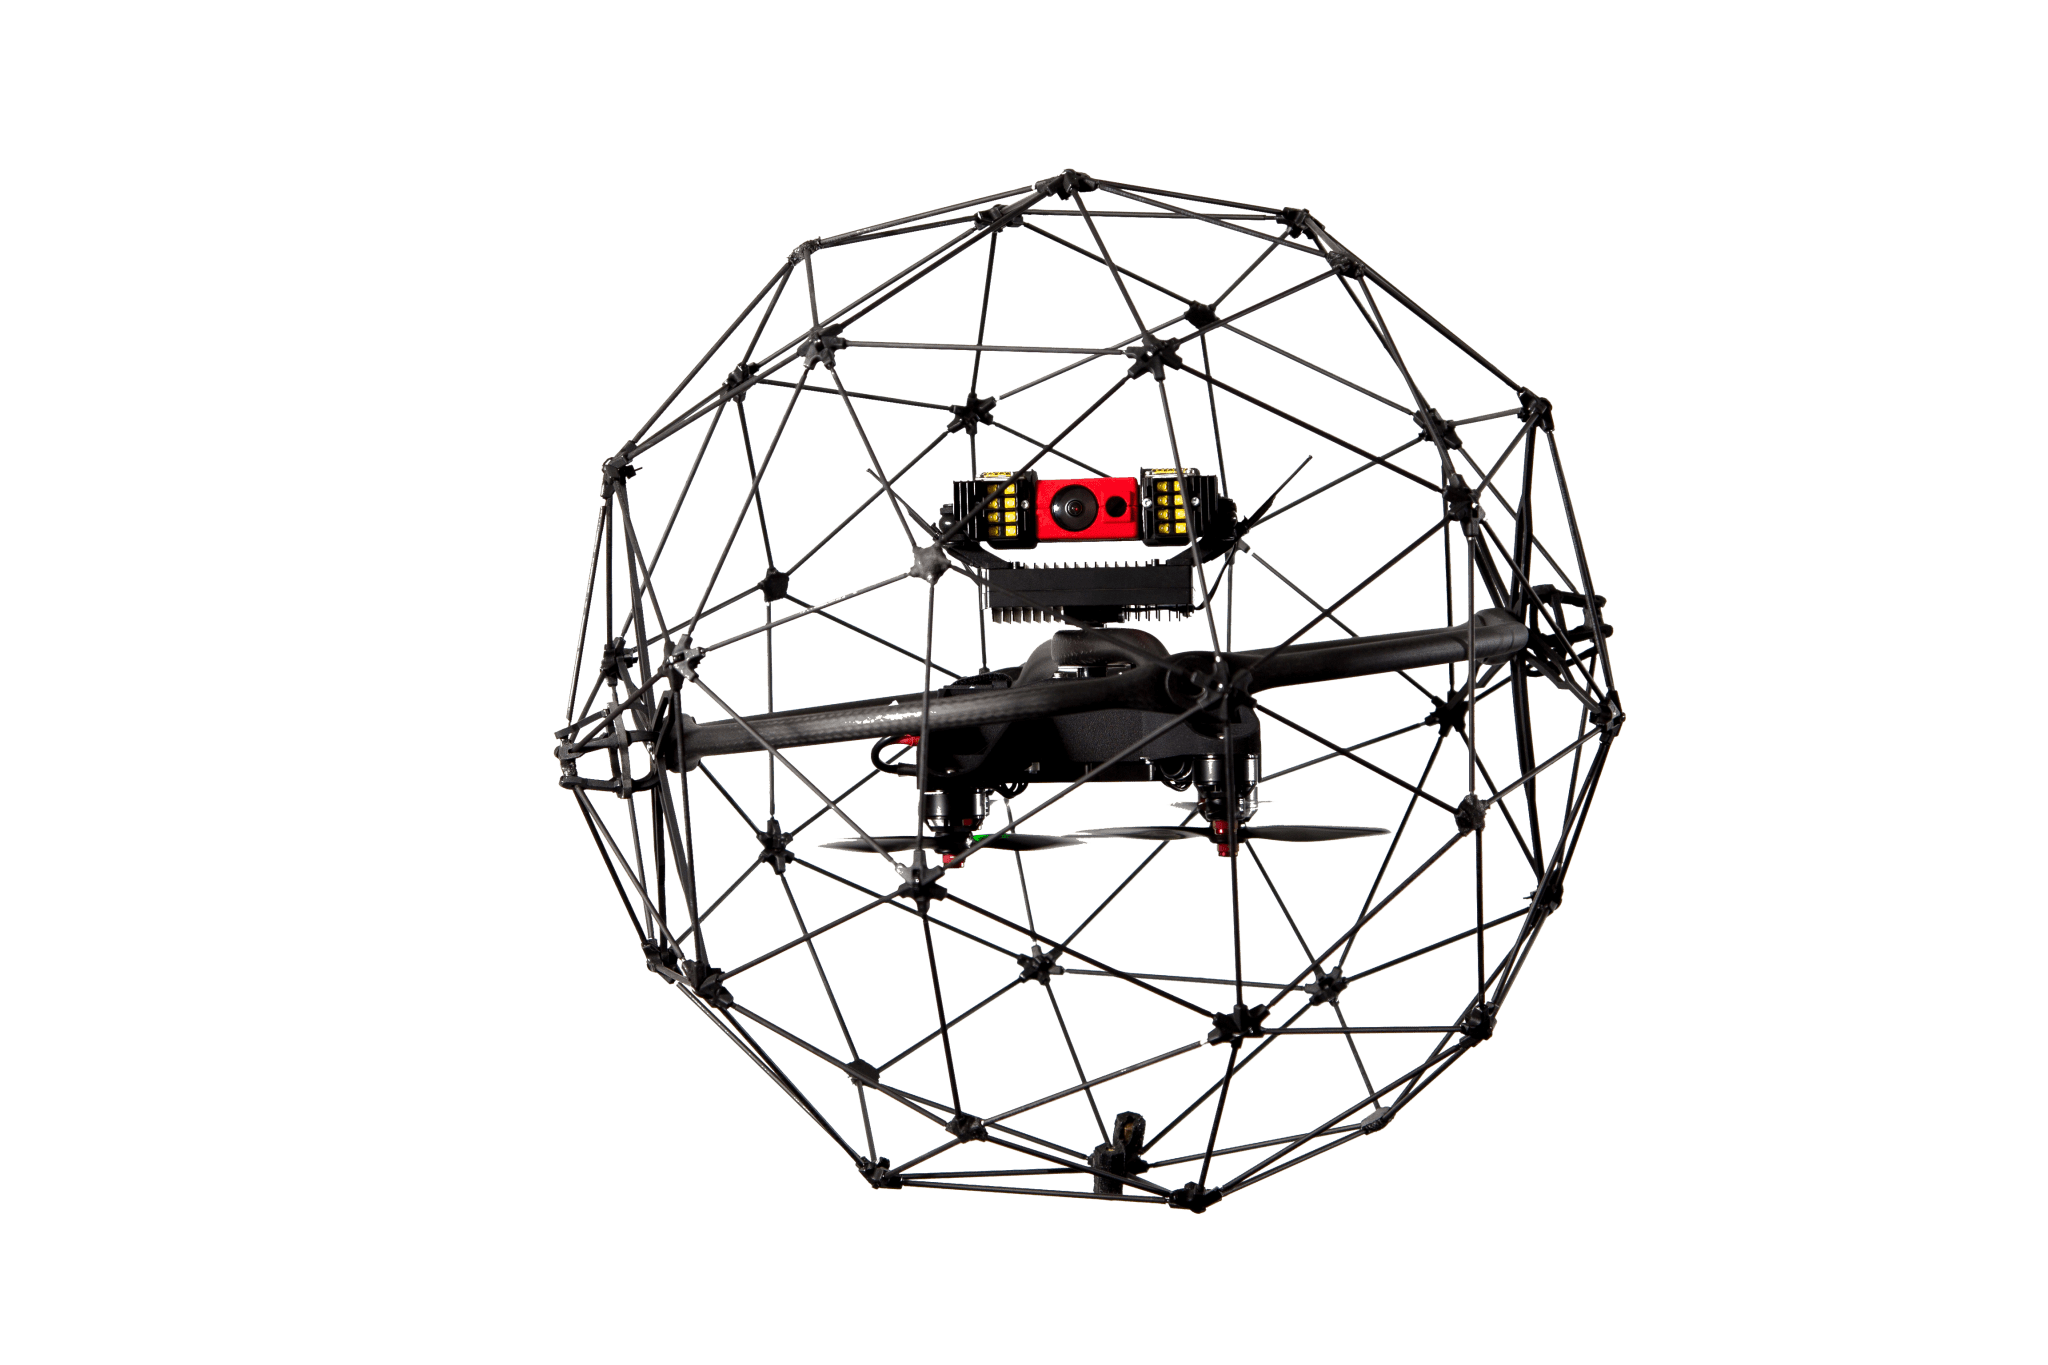 Flyability Drone Search And Rescue Flexible Drone For Inaccessible Places